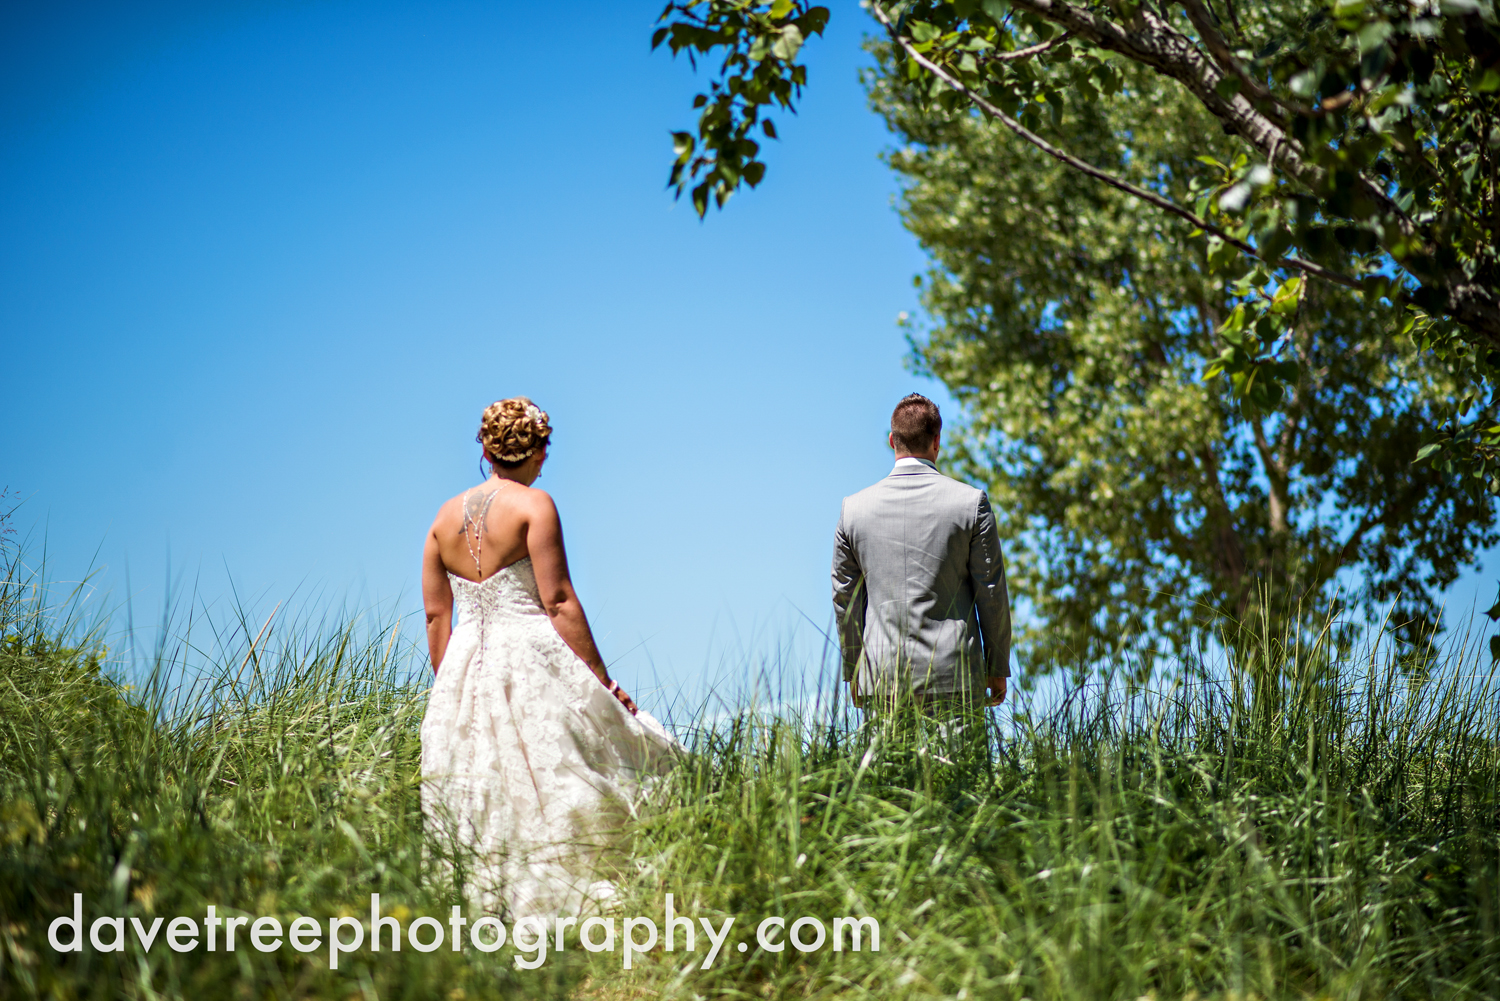 veranda_wedding_photographer_st_joseph_wedding_132.jpg